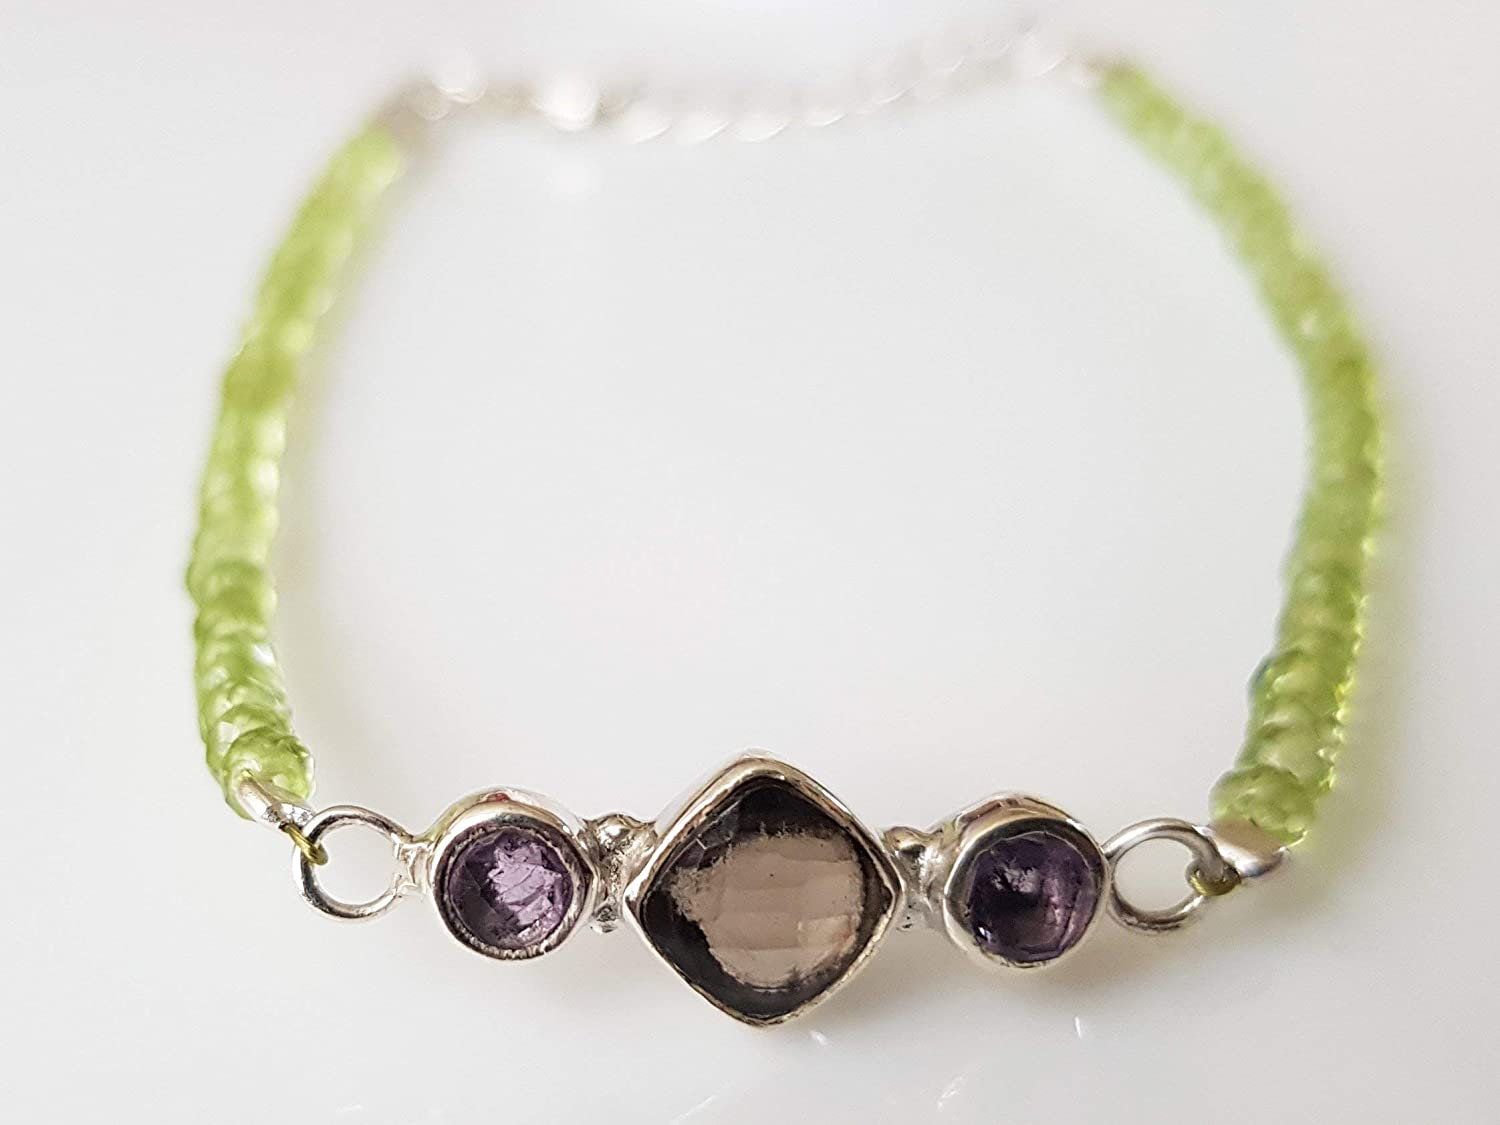 Green Peridot & Moonstone Beads Bar Bracelet with 925 Silver beads & clasp 6.50\' Handmade Gemstone Jewelry